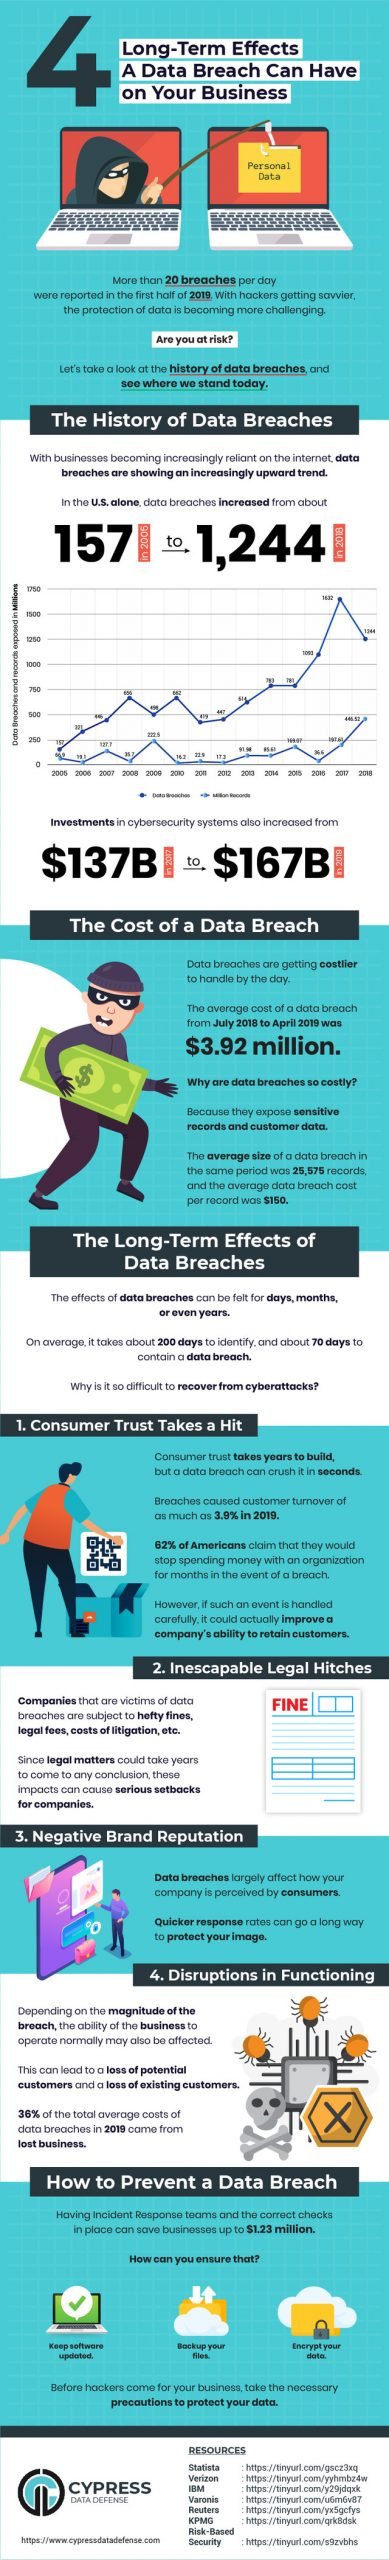 Effects-a-Data-Breach-Can-Have-on-Your-Business-in-the-Long-Term-Infographic